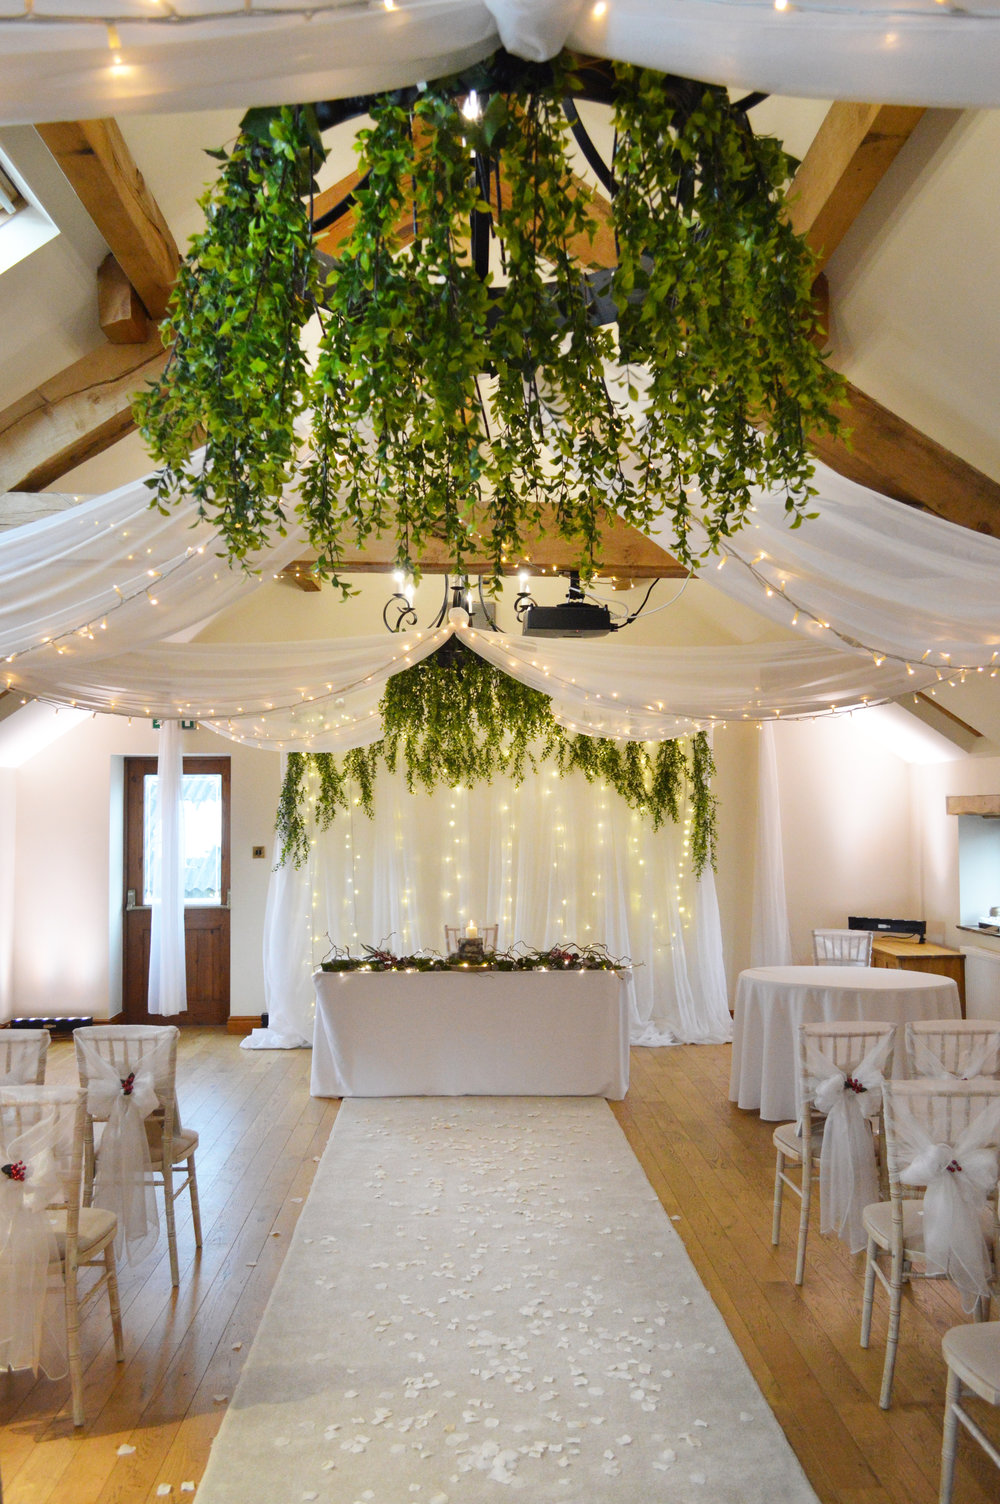 Greenery on chandeliers and fairy light backdrop